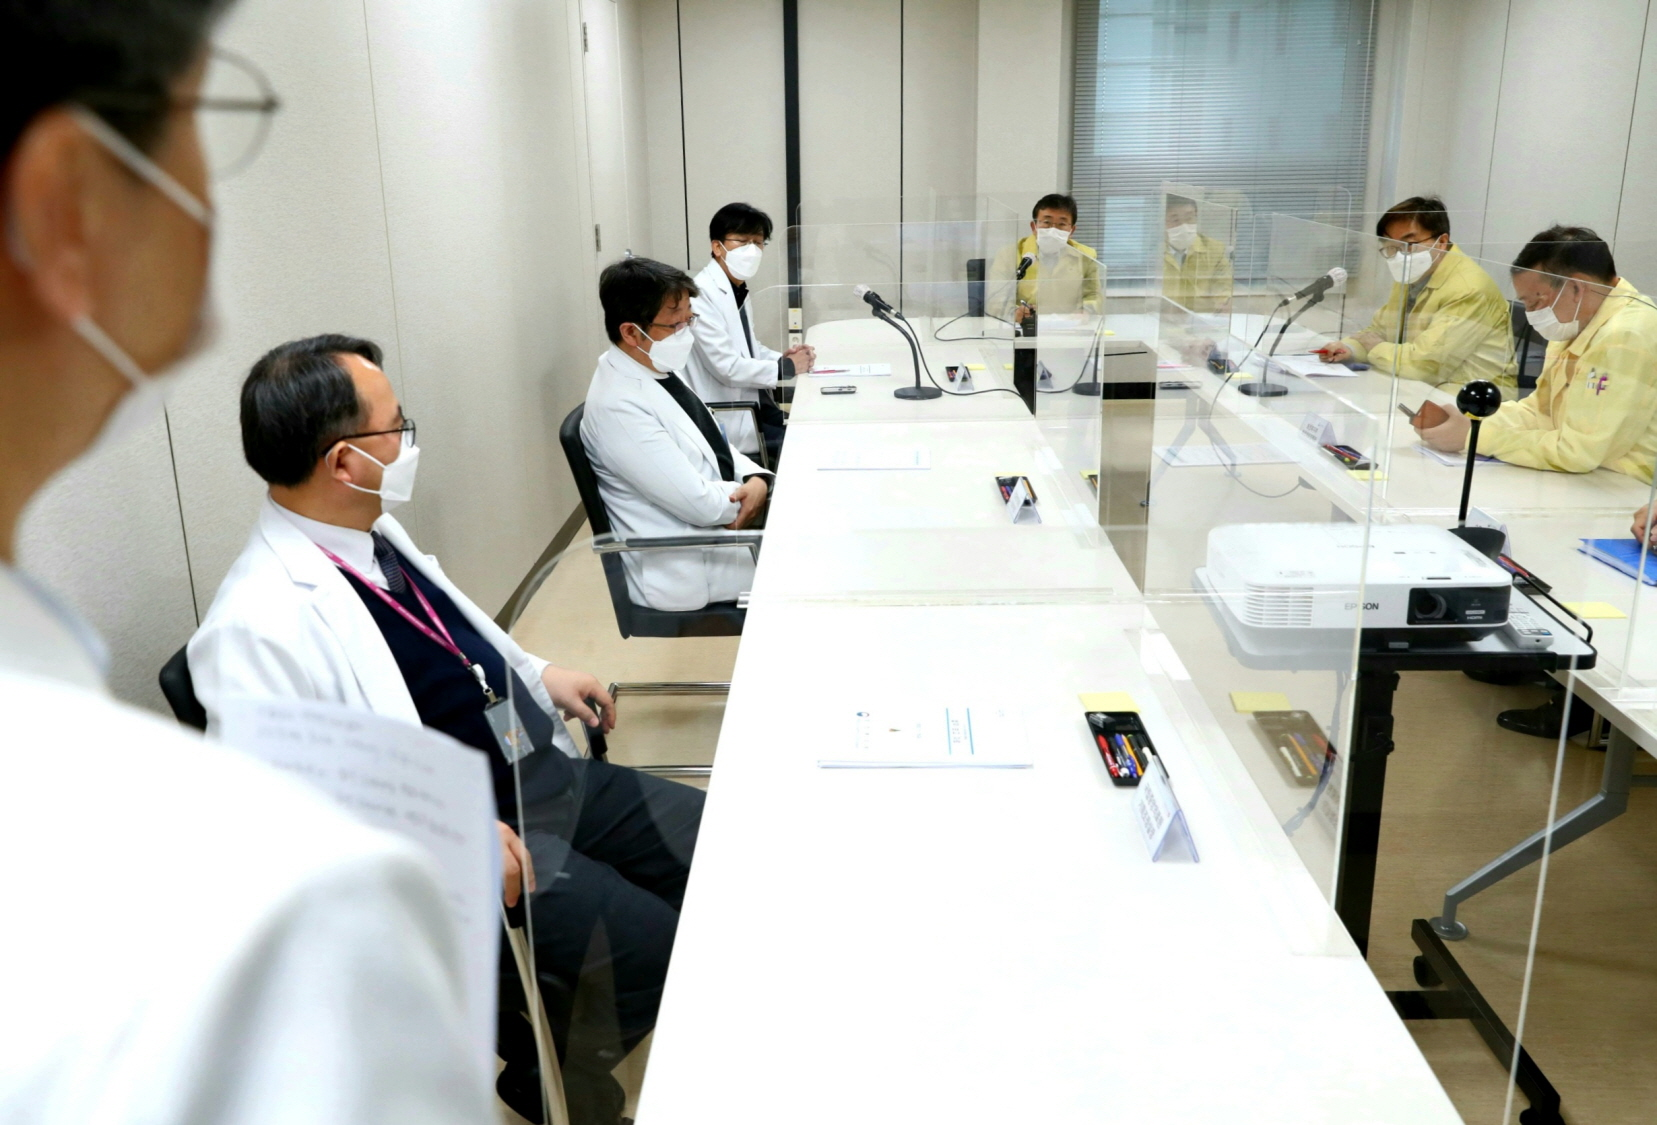 Minister Kwon Visits Joint Situation Room in Seoul Area13